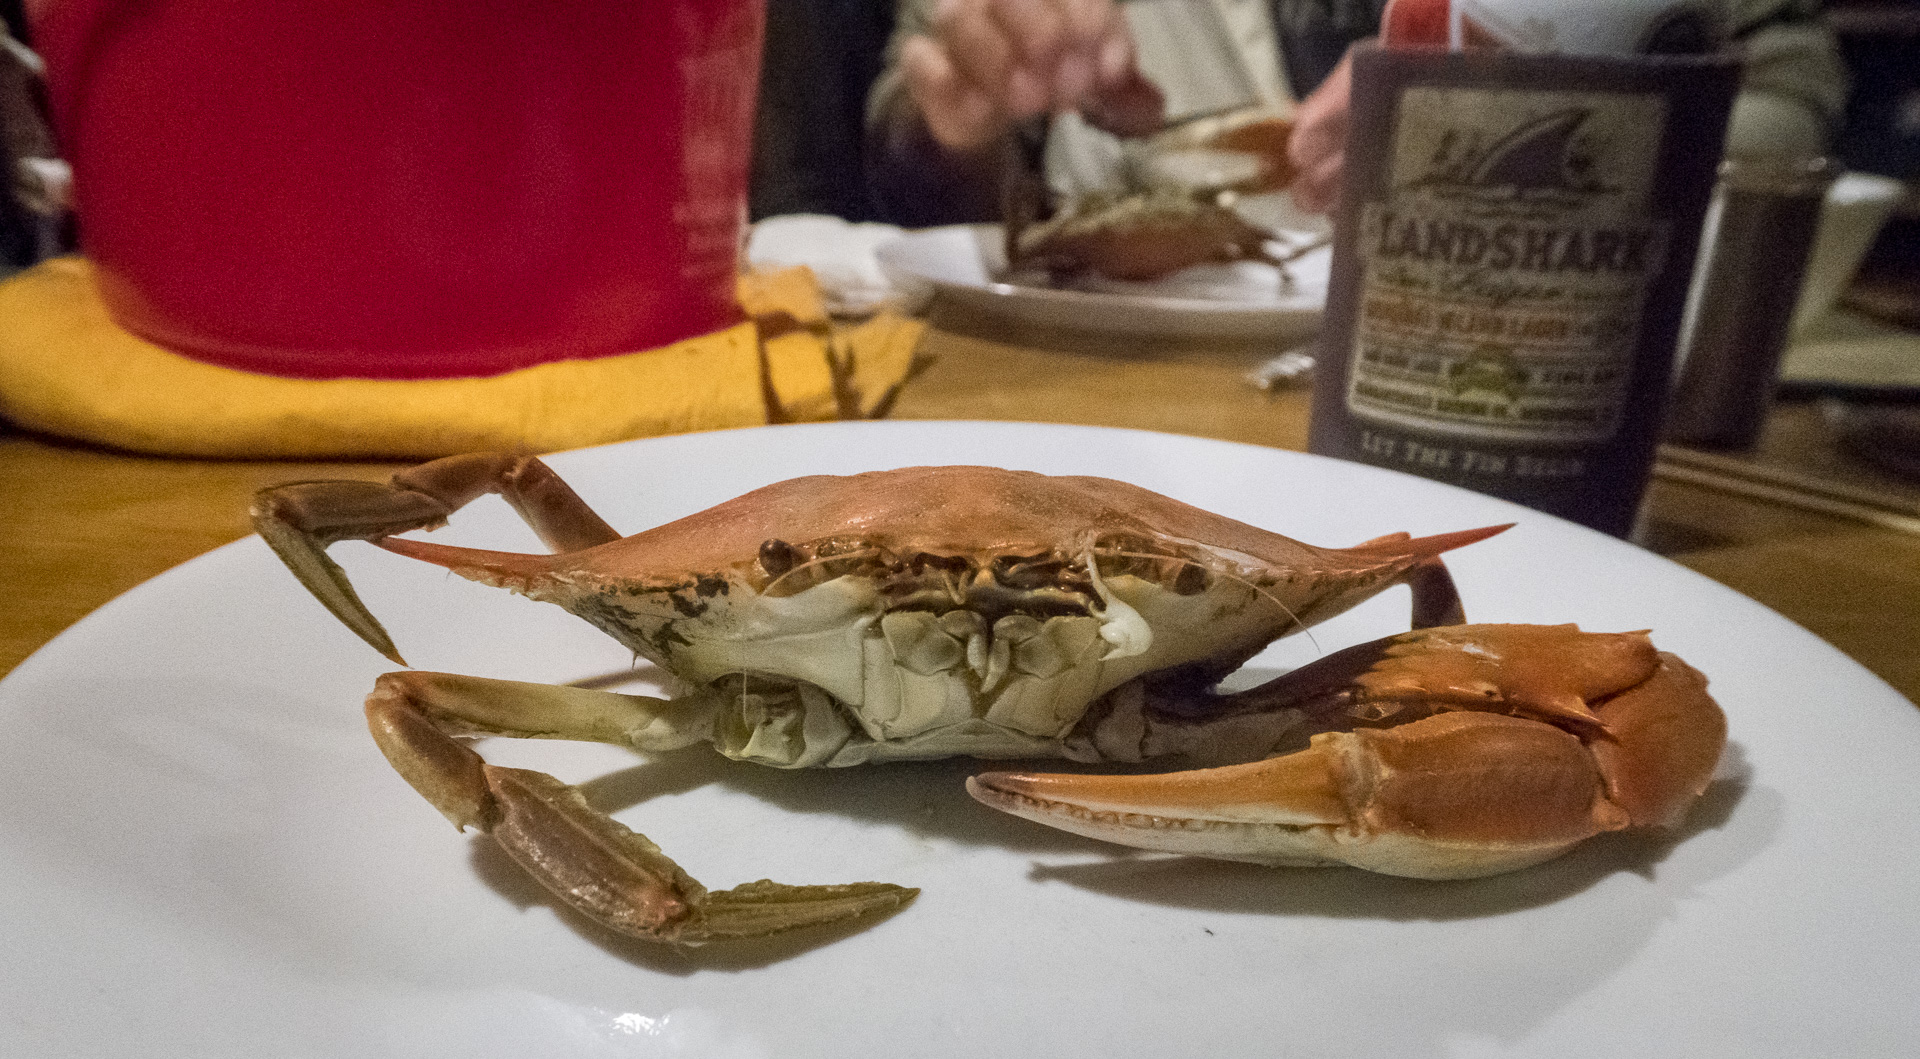 Sailboats, Midshipmen and Blue Crabs, Oh My!